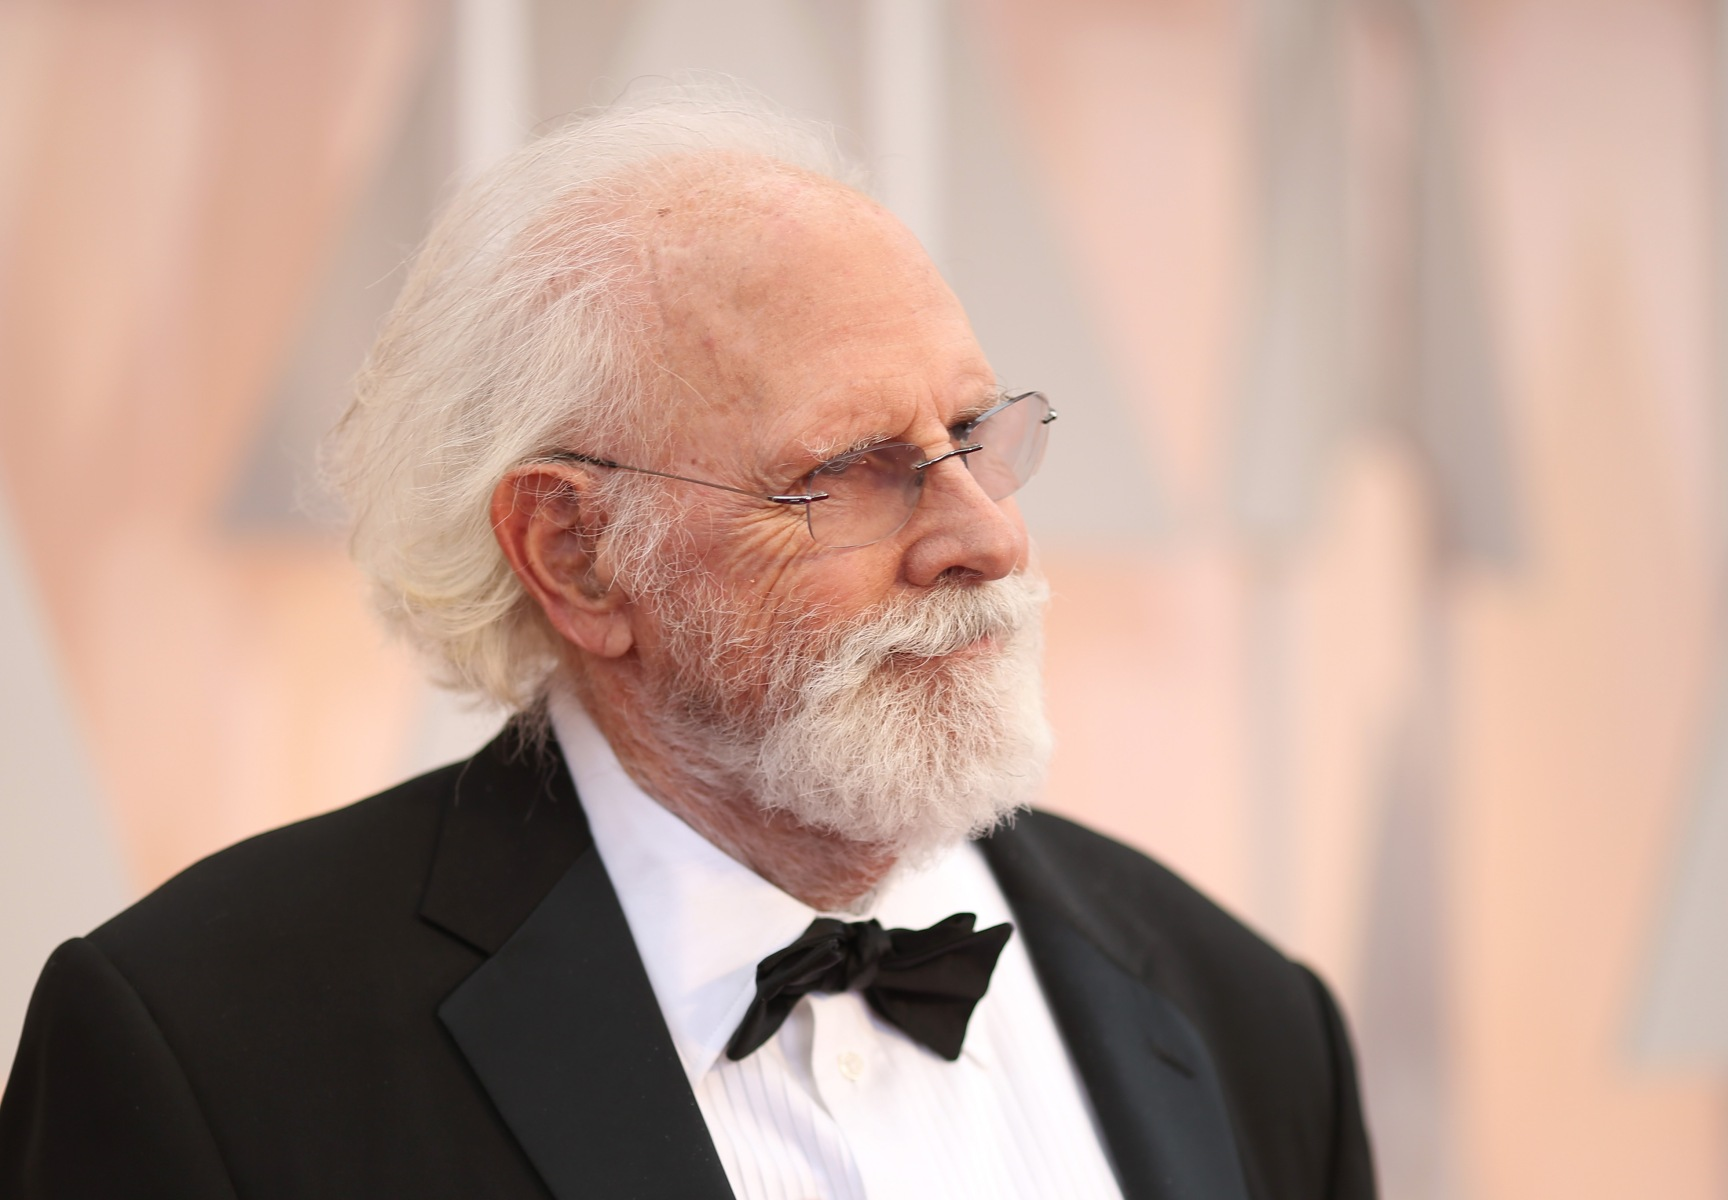 """Actor Bruce Dern attends the 87th Annual Academy Awards at Hollywood & Highland Center on February 22, 2015 in Hollywood, California. Dern will reportedly replace the late Burt Reynolds in Quentin Tarantino's upcoming """"Once Upon a Time in Hollywood."""" (Photo by Christopher Polk/Getty Images)"""